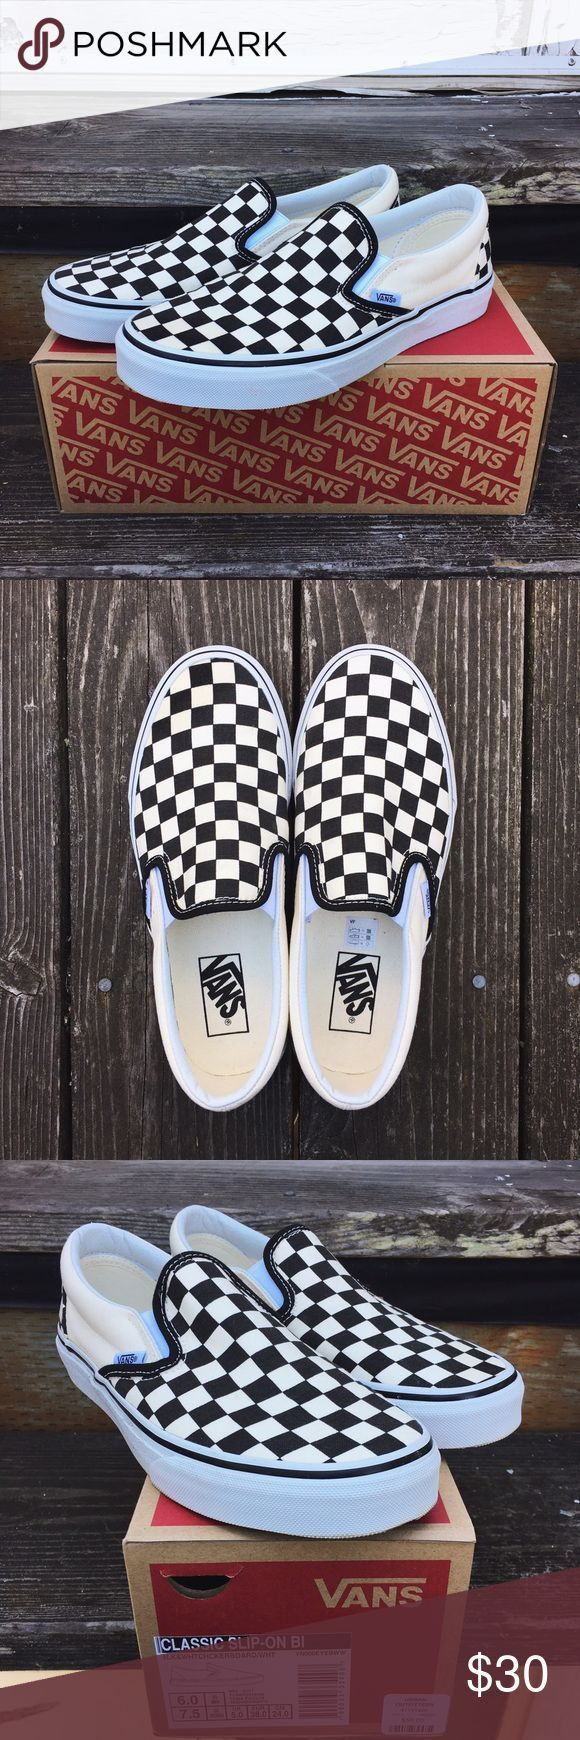 Awesome Vans Shoes Checkered Slip On Vans Vans slip on shoes